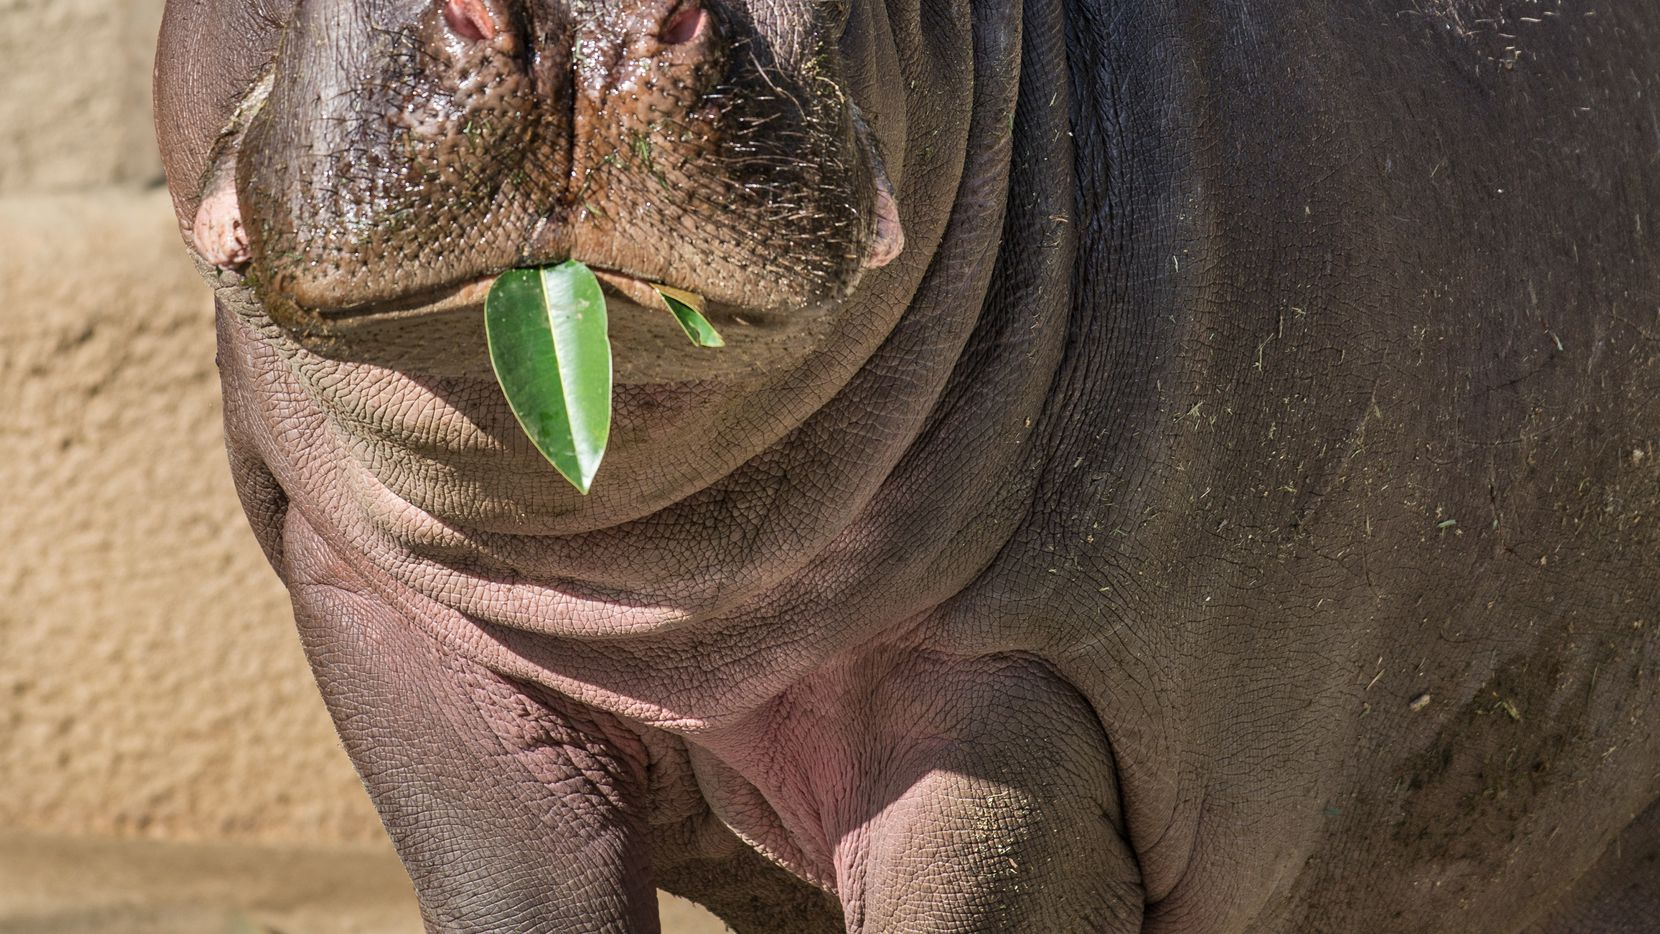 Adhama, a 6-year-old male hippo, enjoys a leafy meal at the Los Angeles Zoo.